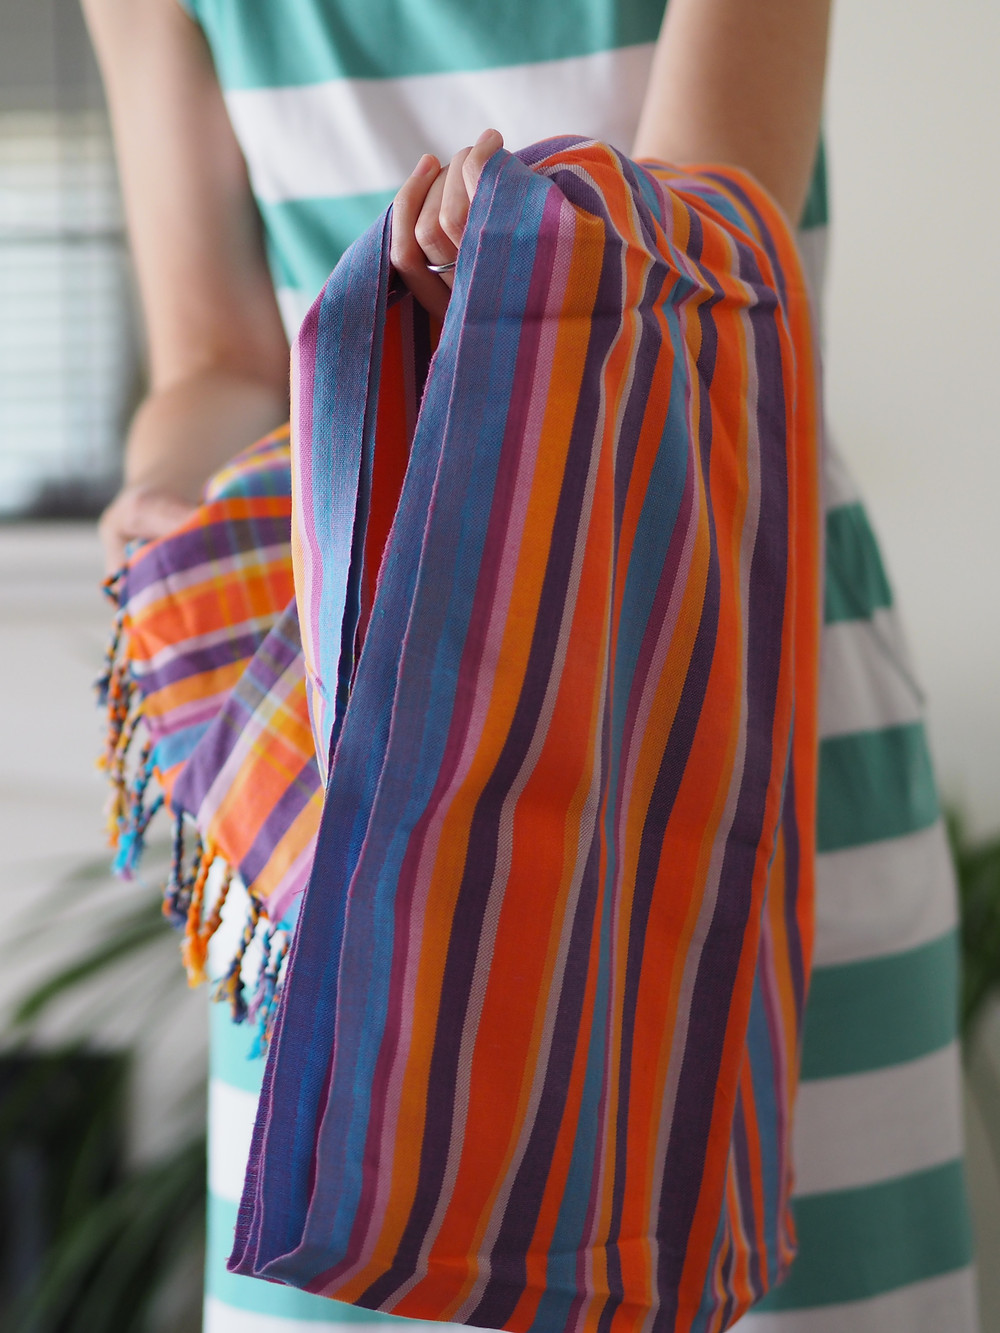 Handmade kenyan cotton sarong cover up. Available to buy at Wild Home Online on Etsy.